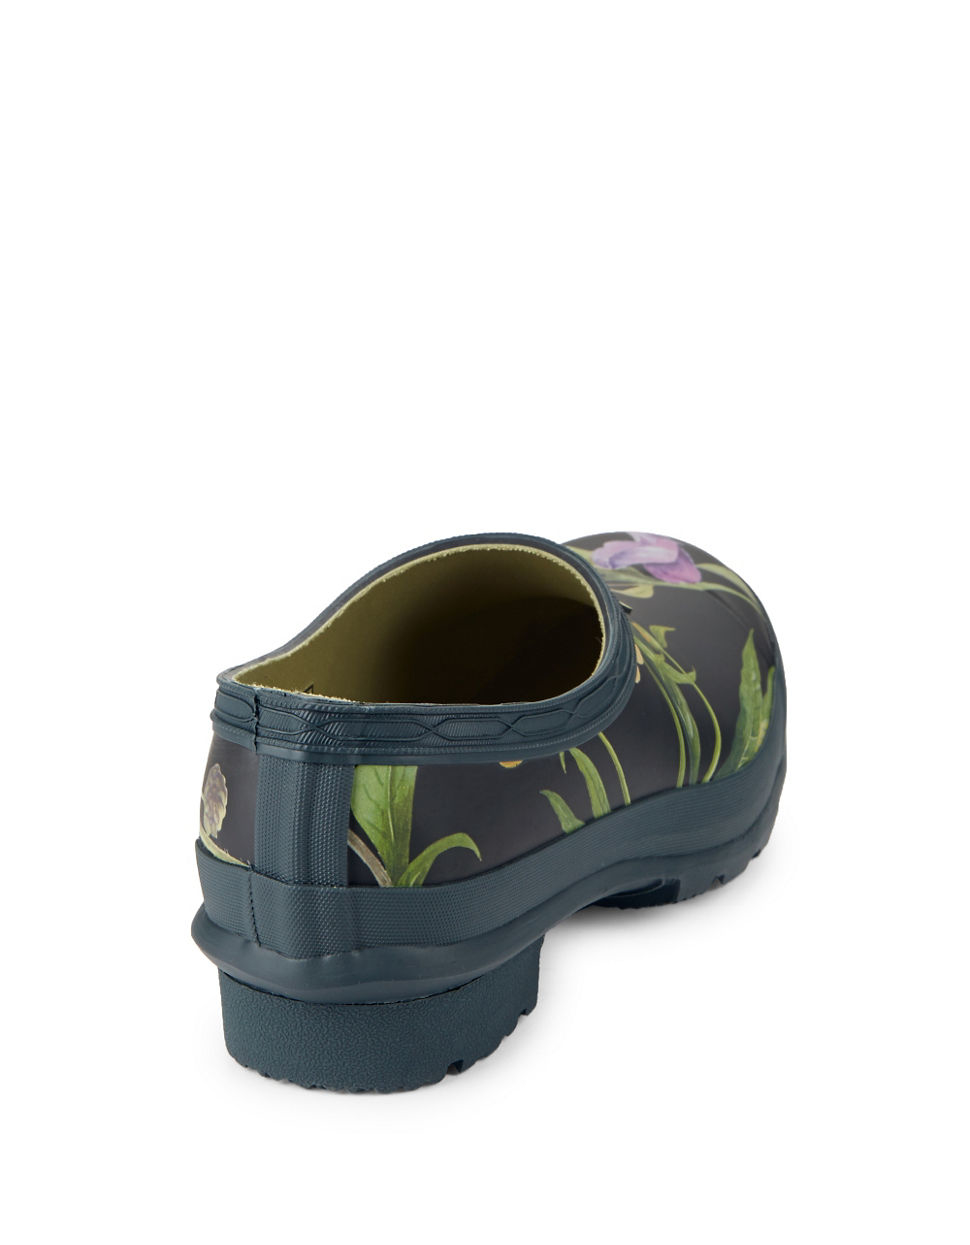 Hunter Royal Horticulture Gardening Clogs in Black Lyst